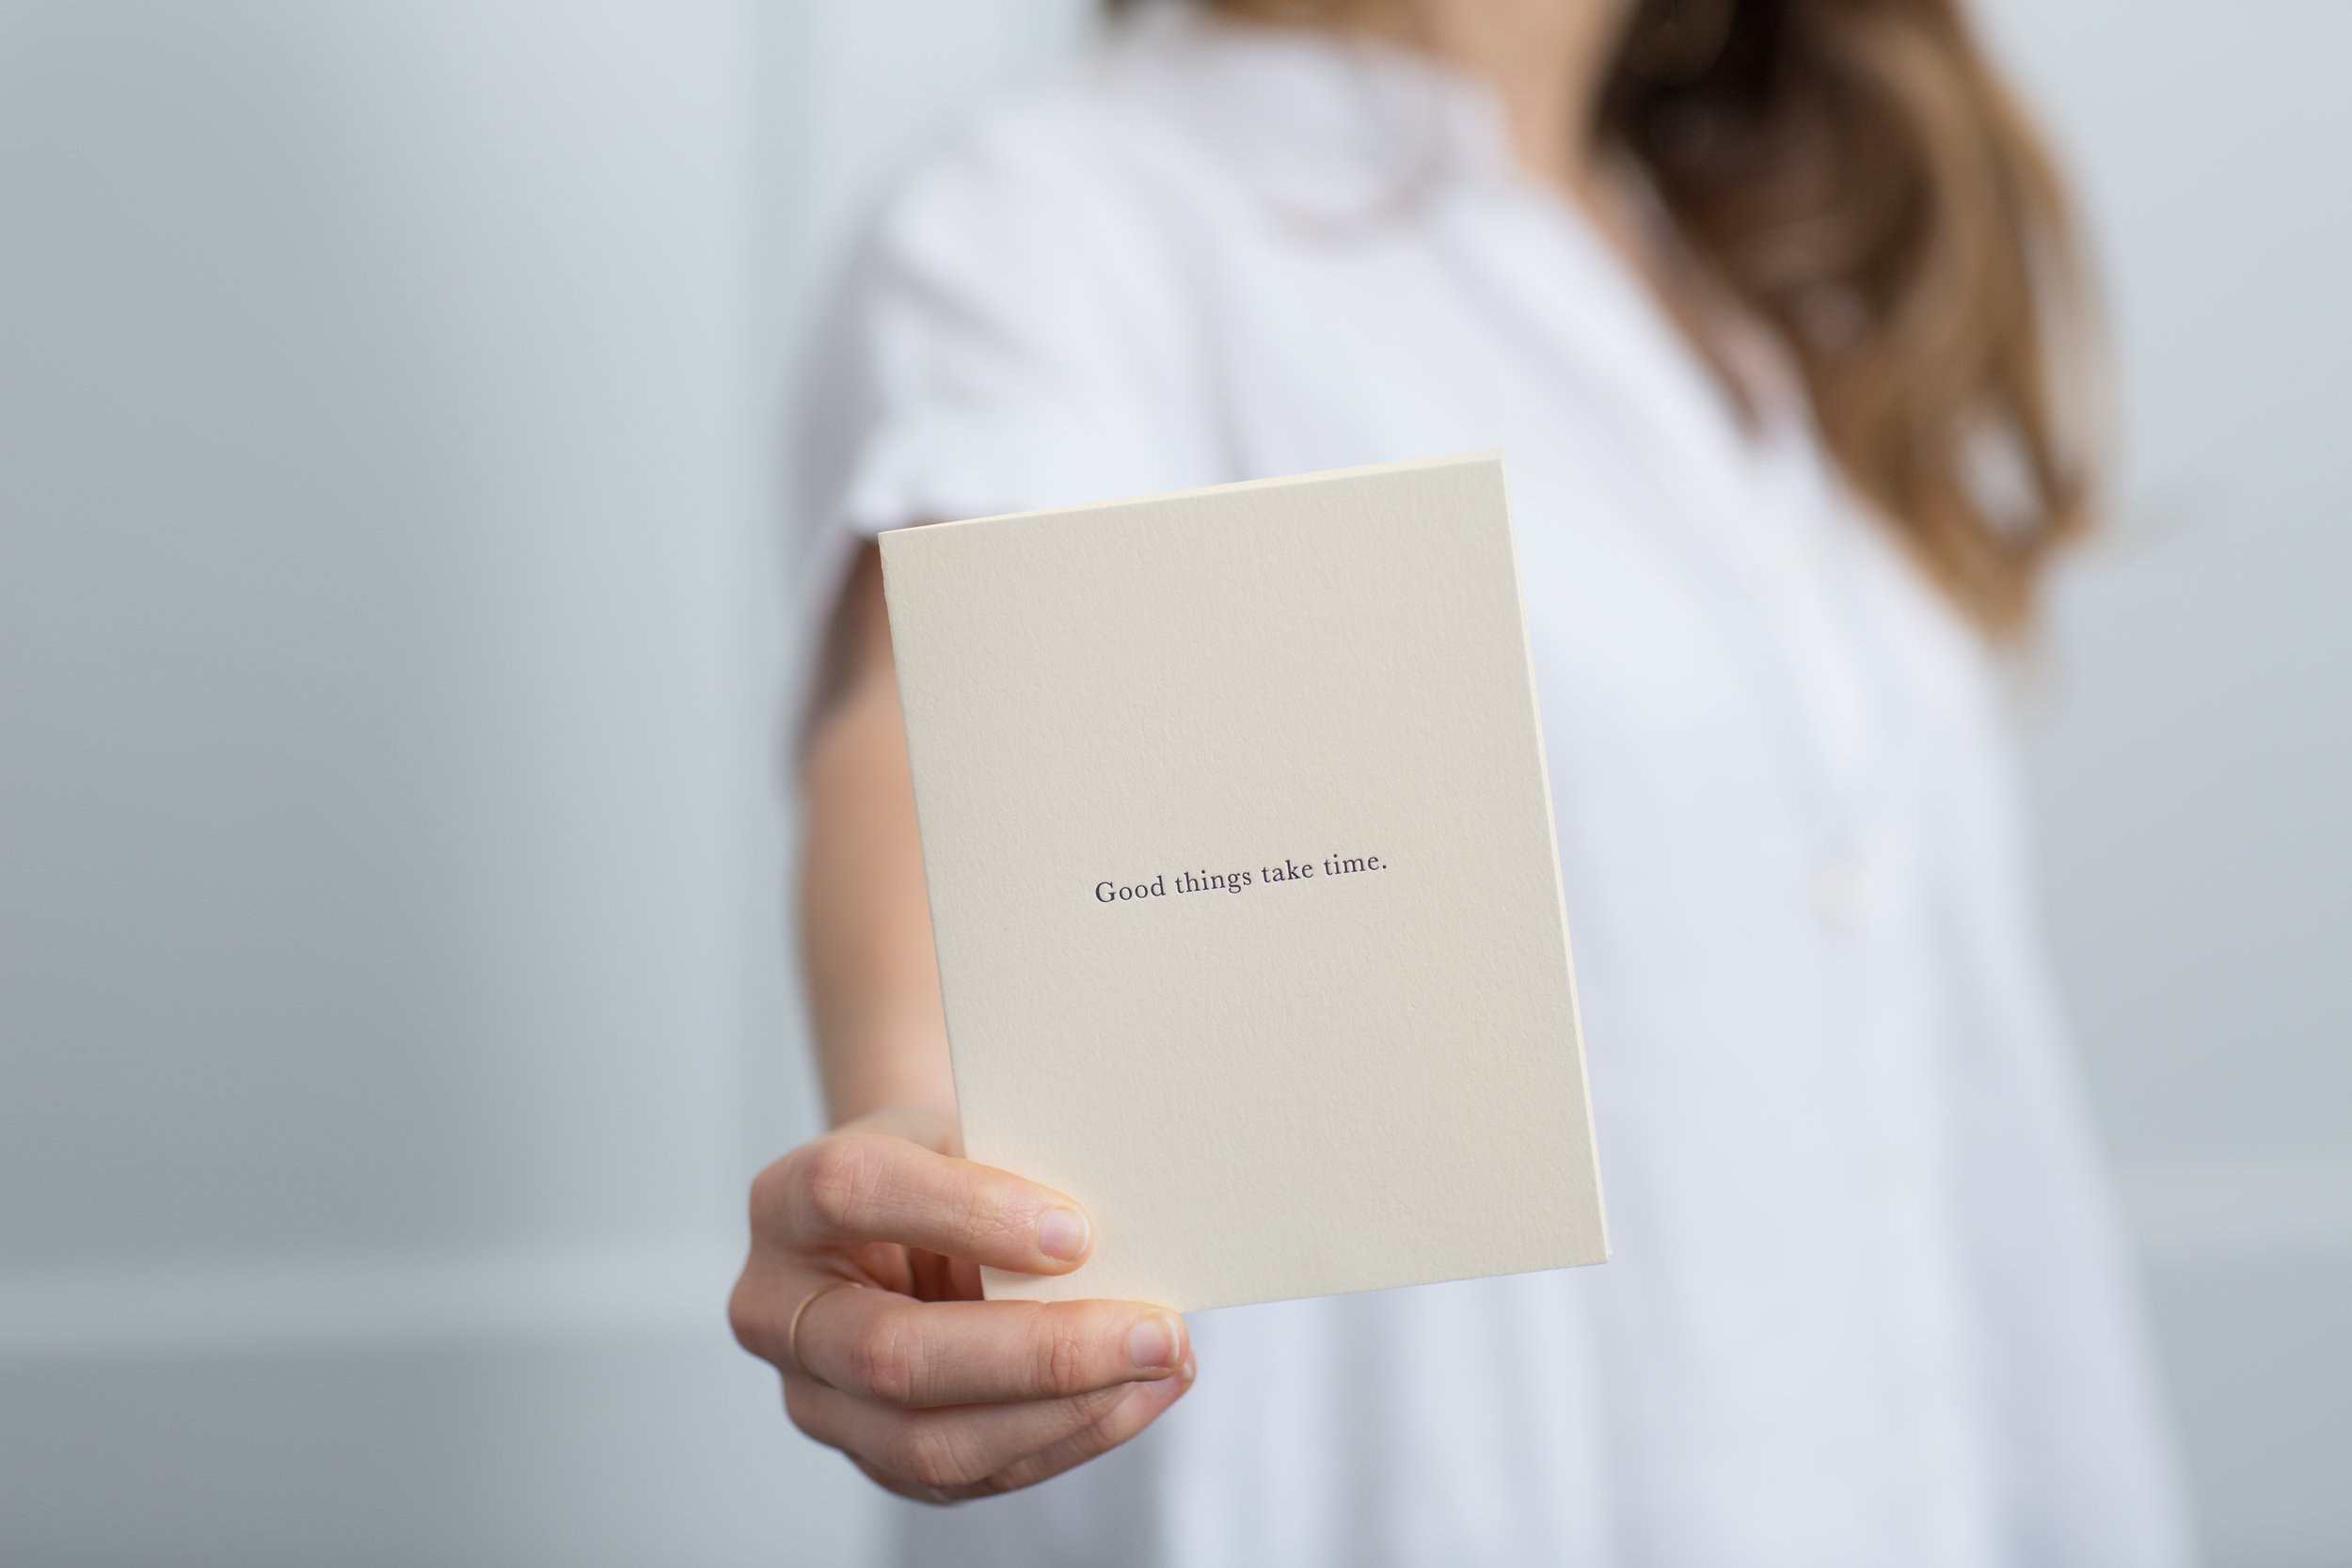 Good things take time | Encouragement and Support cards by Of Note Stationers